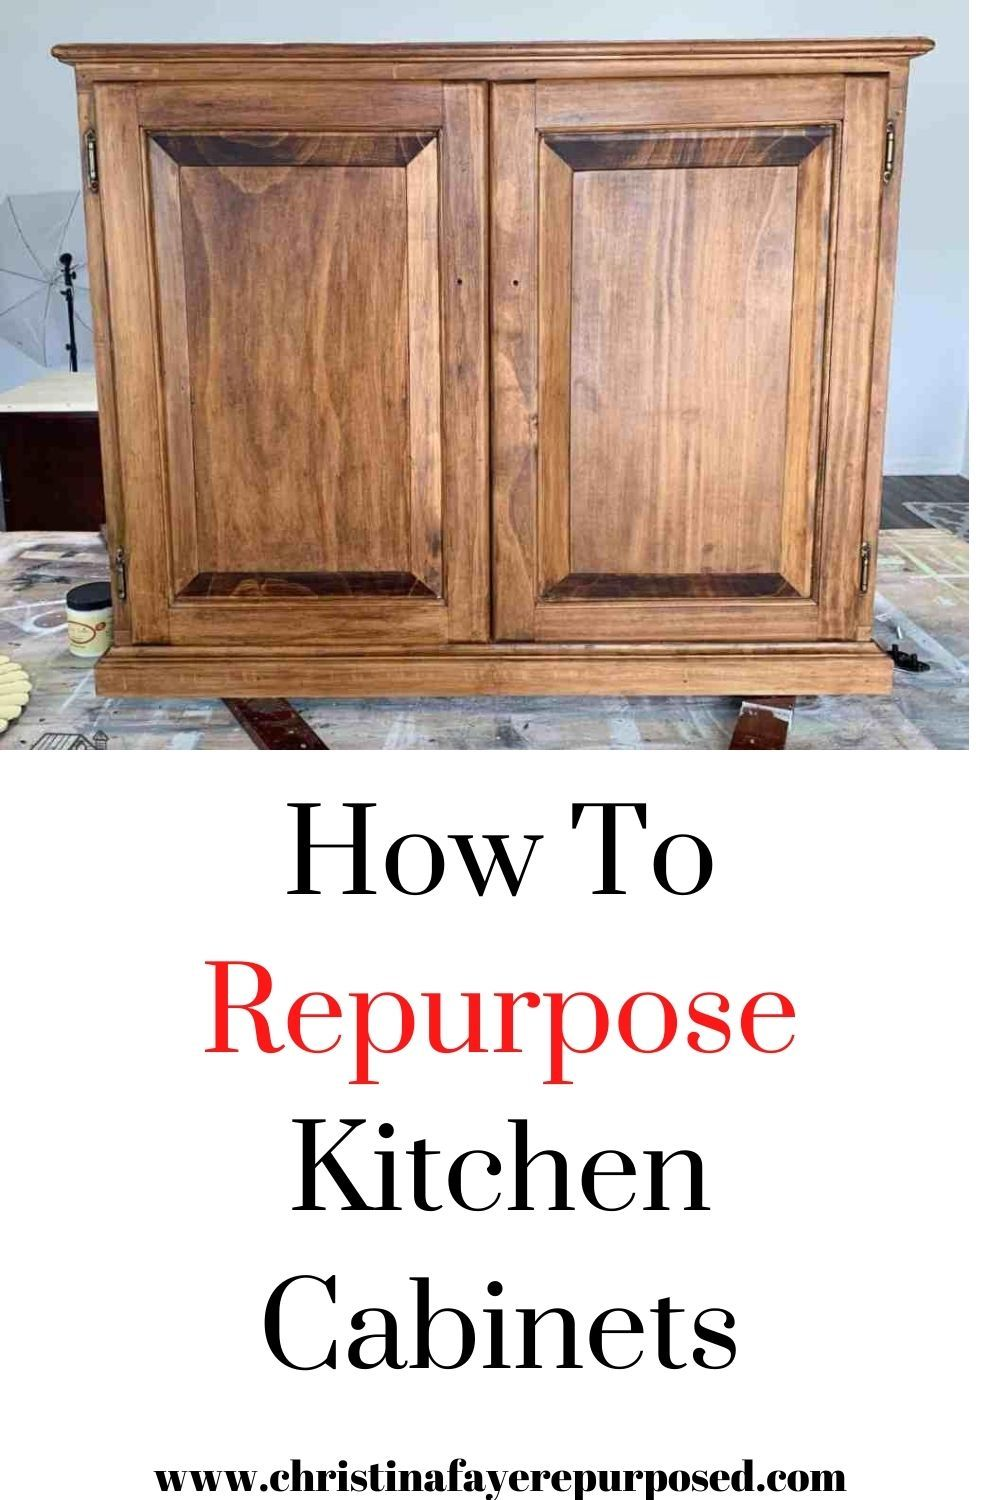 Repurposed Kitchen Cabinet Christina Faye Repurposed In 2020 Repurposed Kitchen Diy Kitchen Cabinets Repurposed Furniture